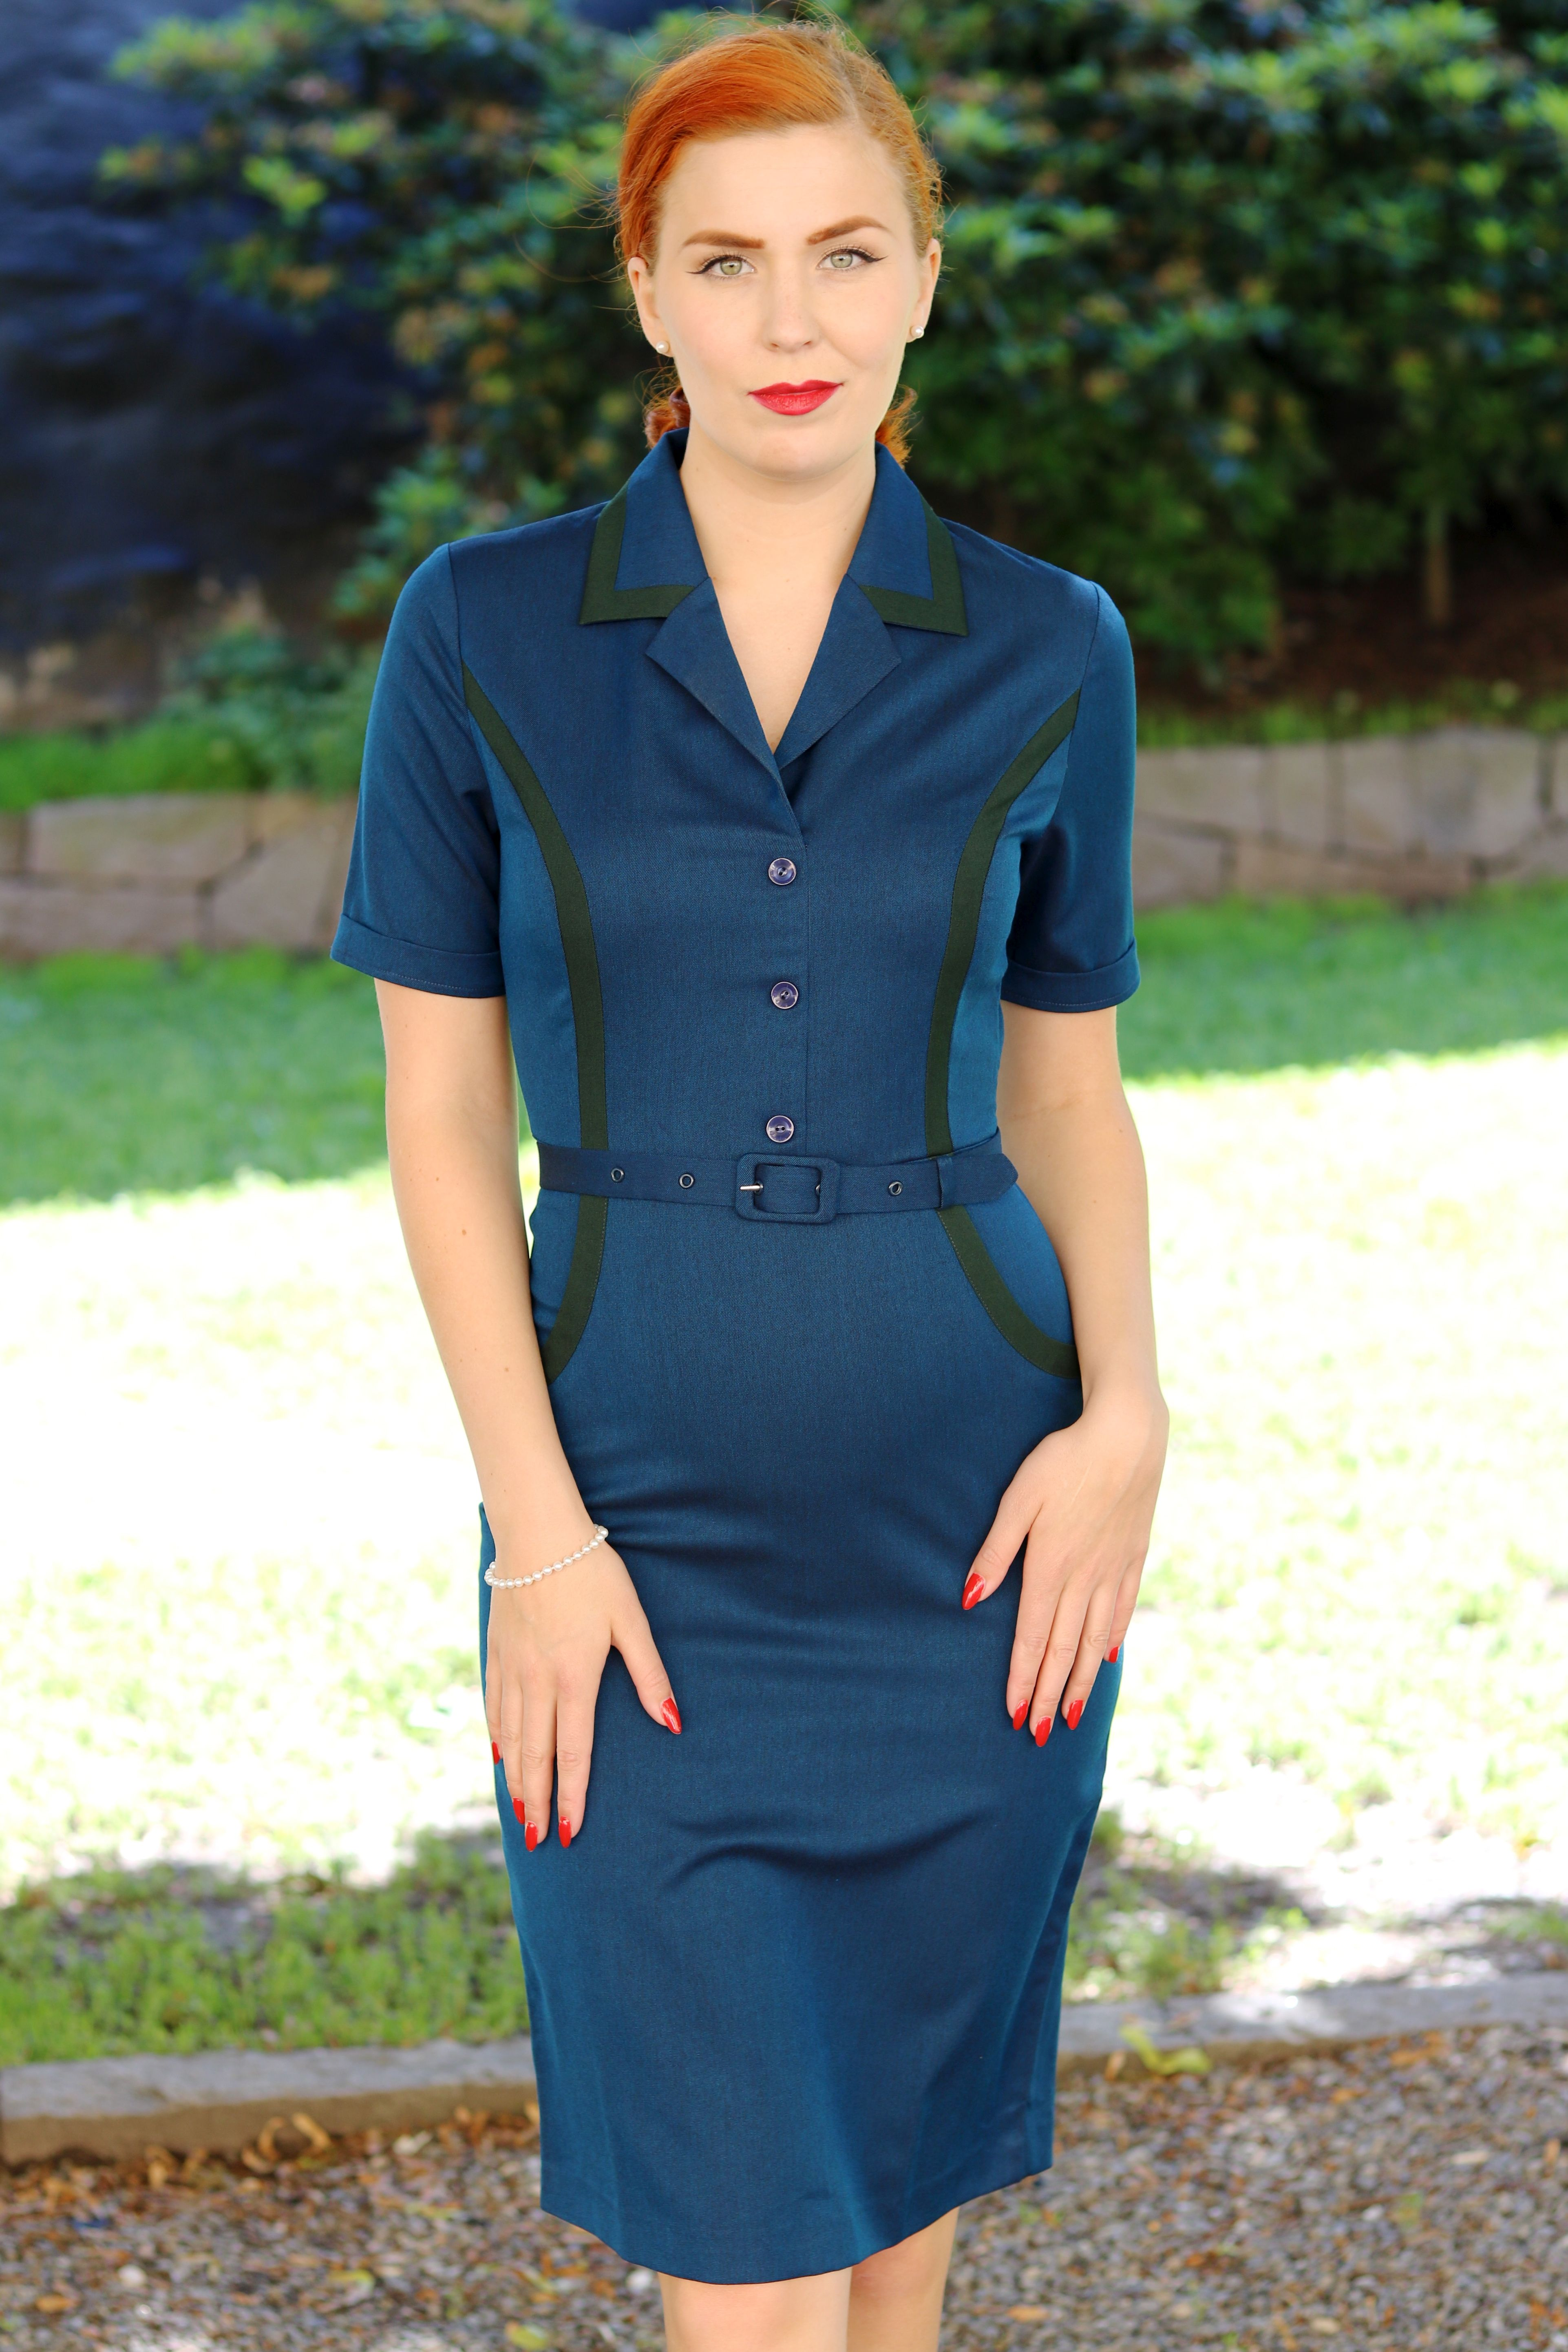 46a8baa8fbe Daisy Dapper Collection Brenda Teal 1950s style available from our online  shop www.RocknRomance.co.uk